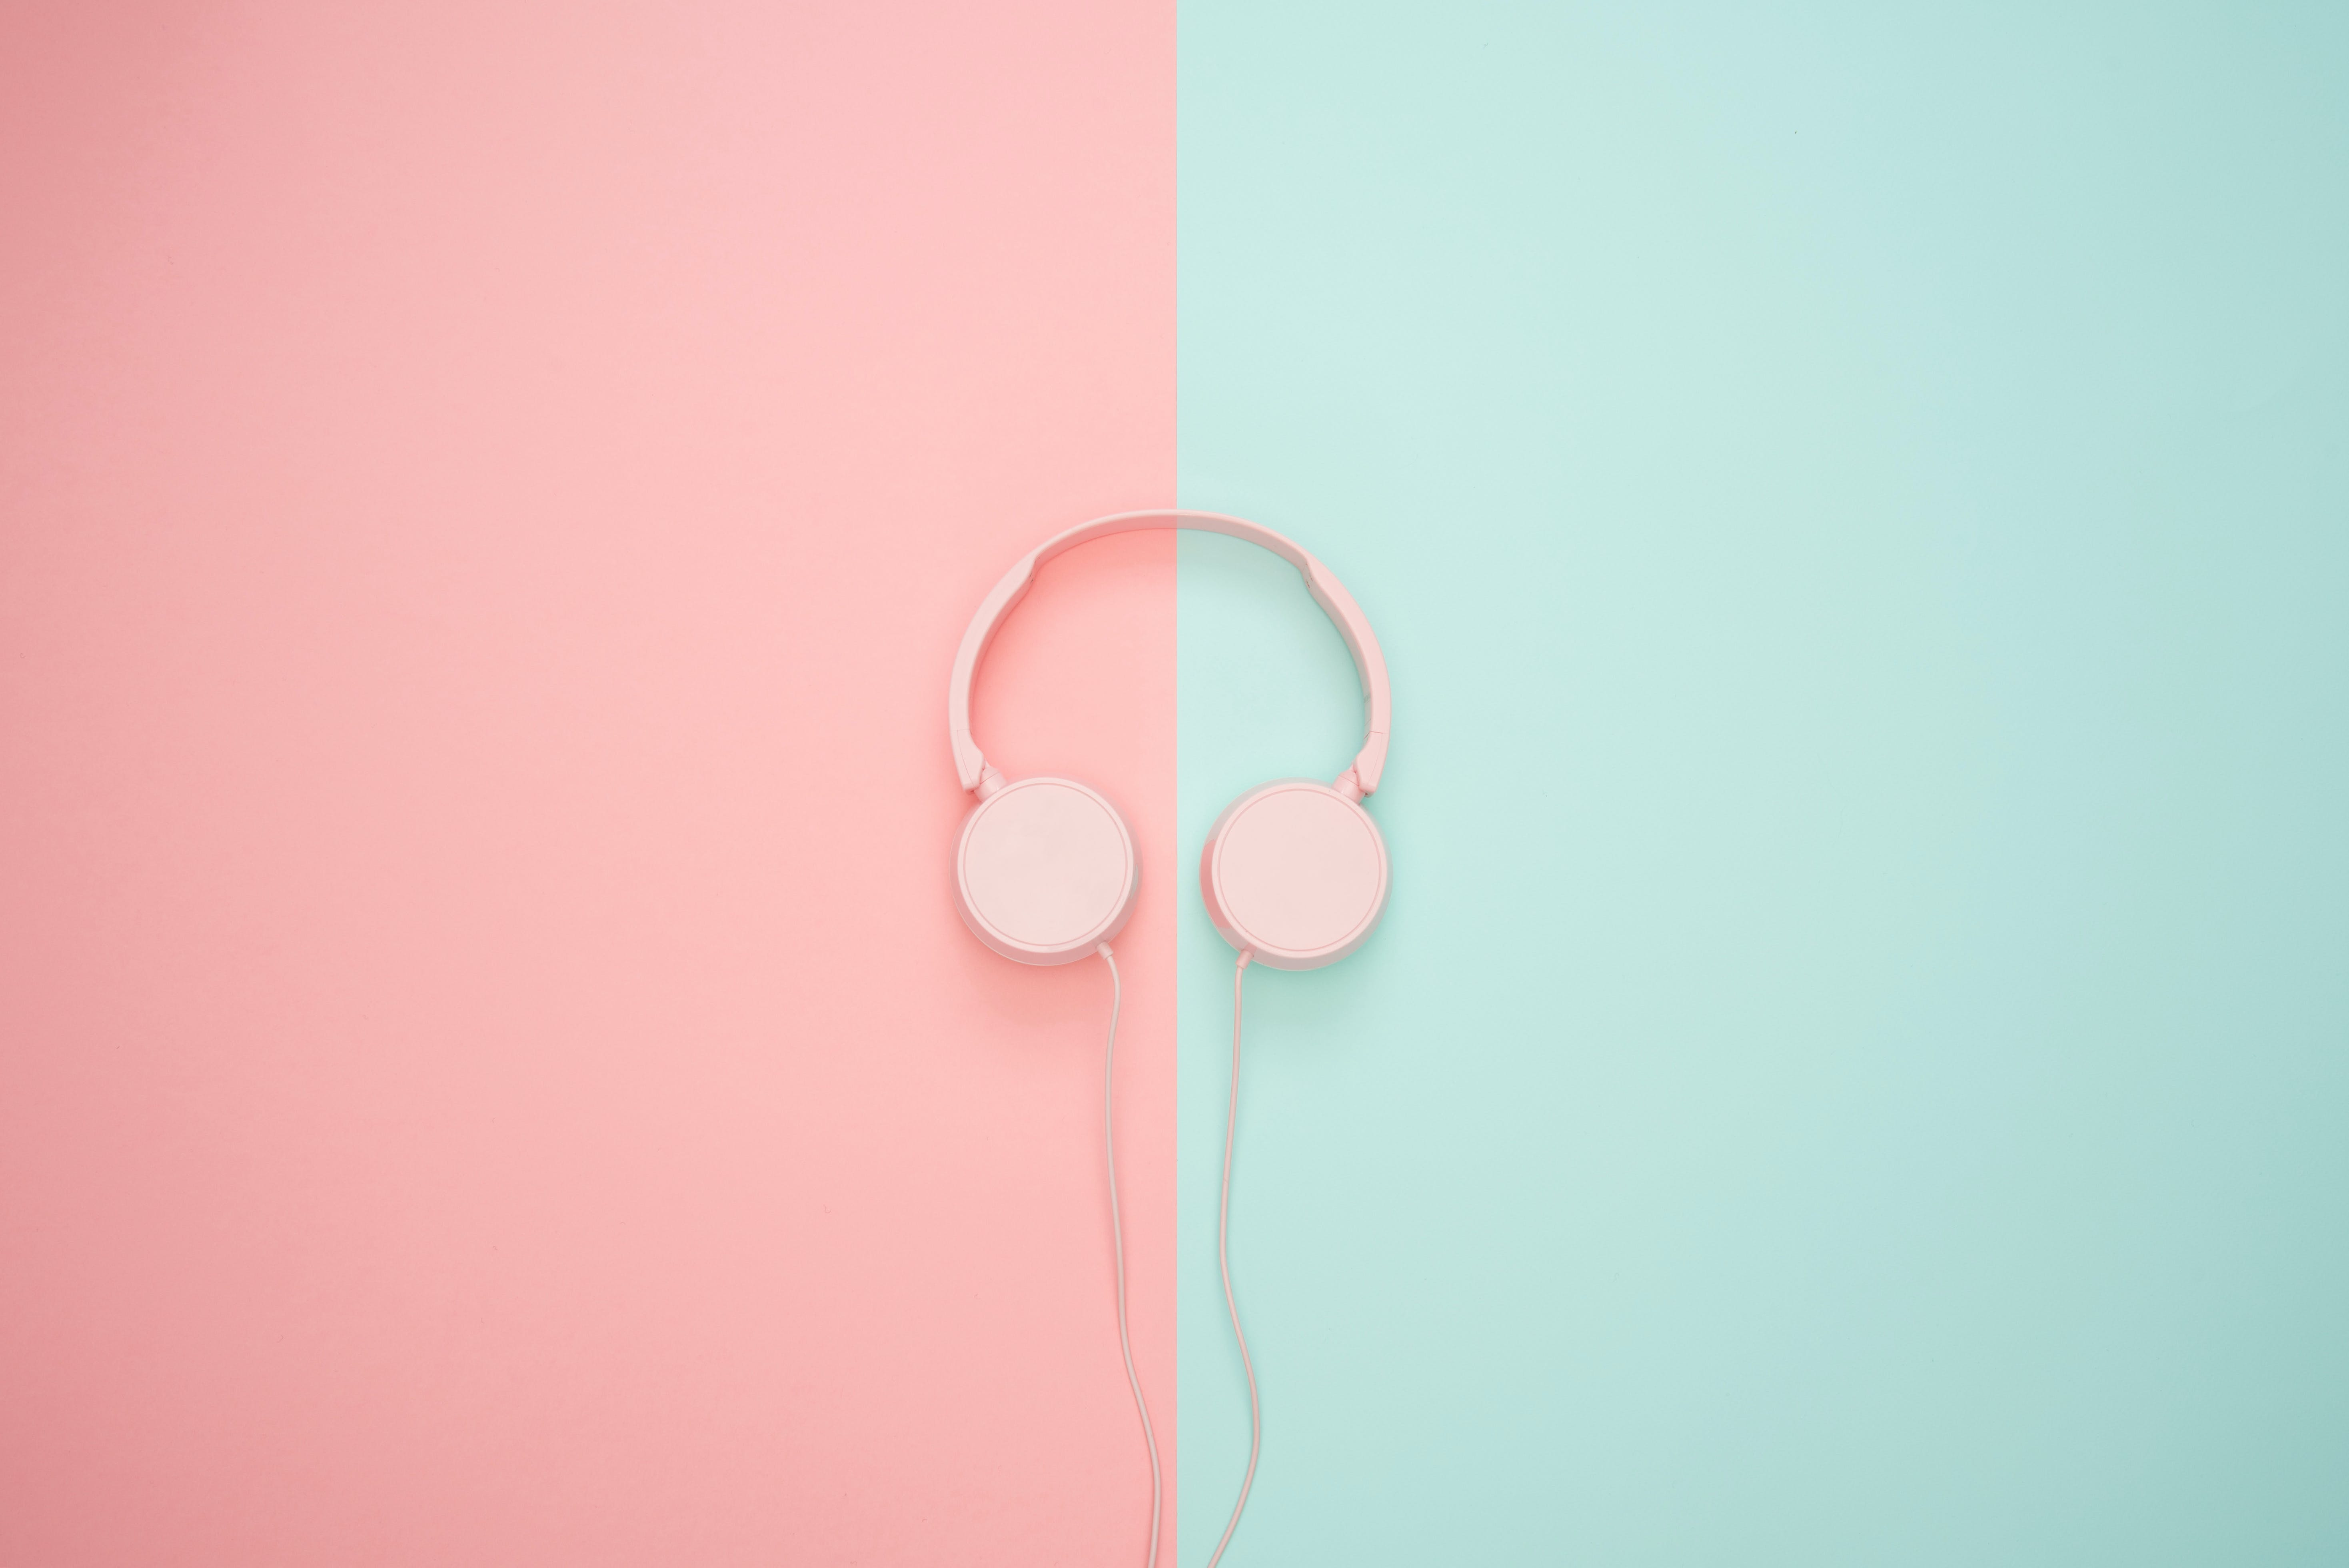 Pink Corded Headphones on pink and teal Wall